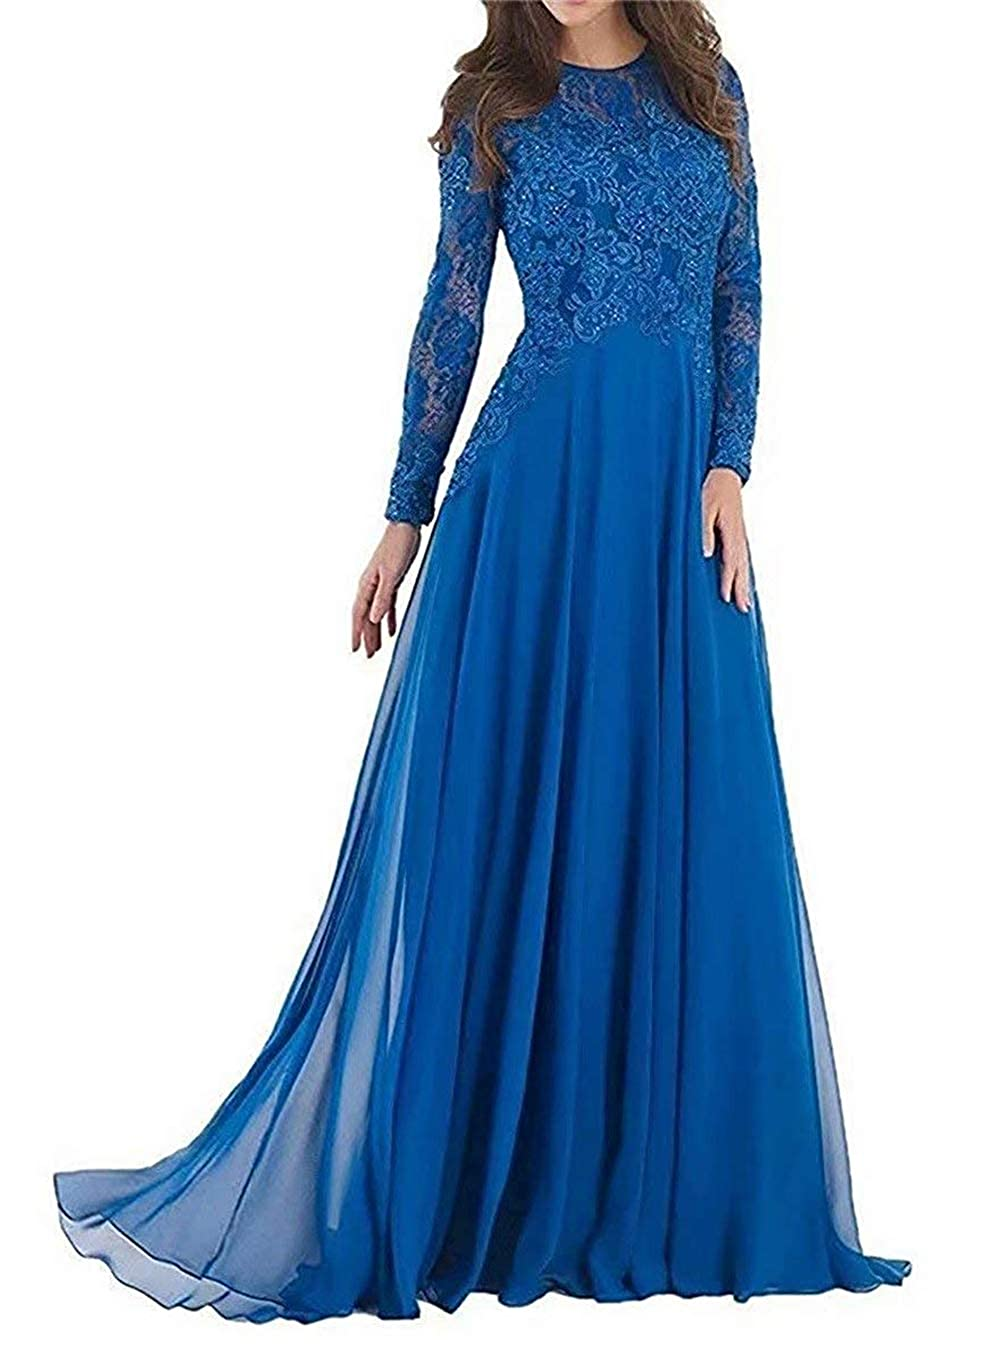 bluee Pretygirl Women's Elegant Lace Mother of The Bride Dress Evening Dress Prom Gown for Wedding